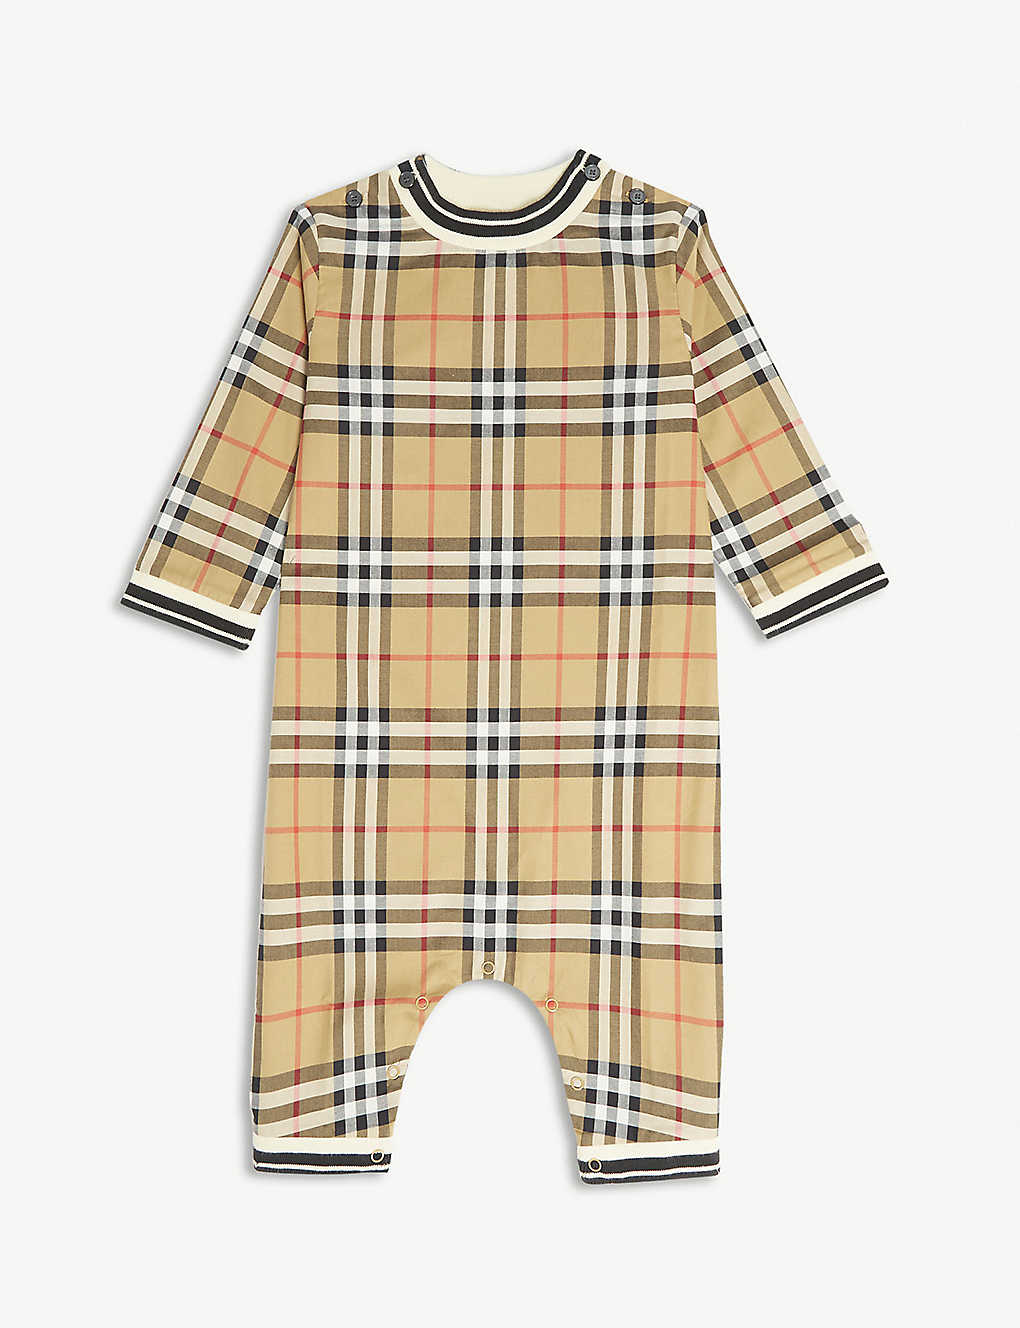 BURBERRY - Vintage check cotton babygrow 1-18 months  f1006ef19a7f